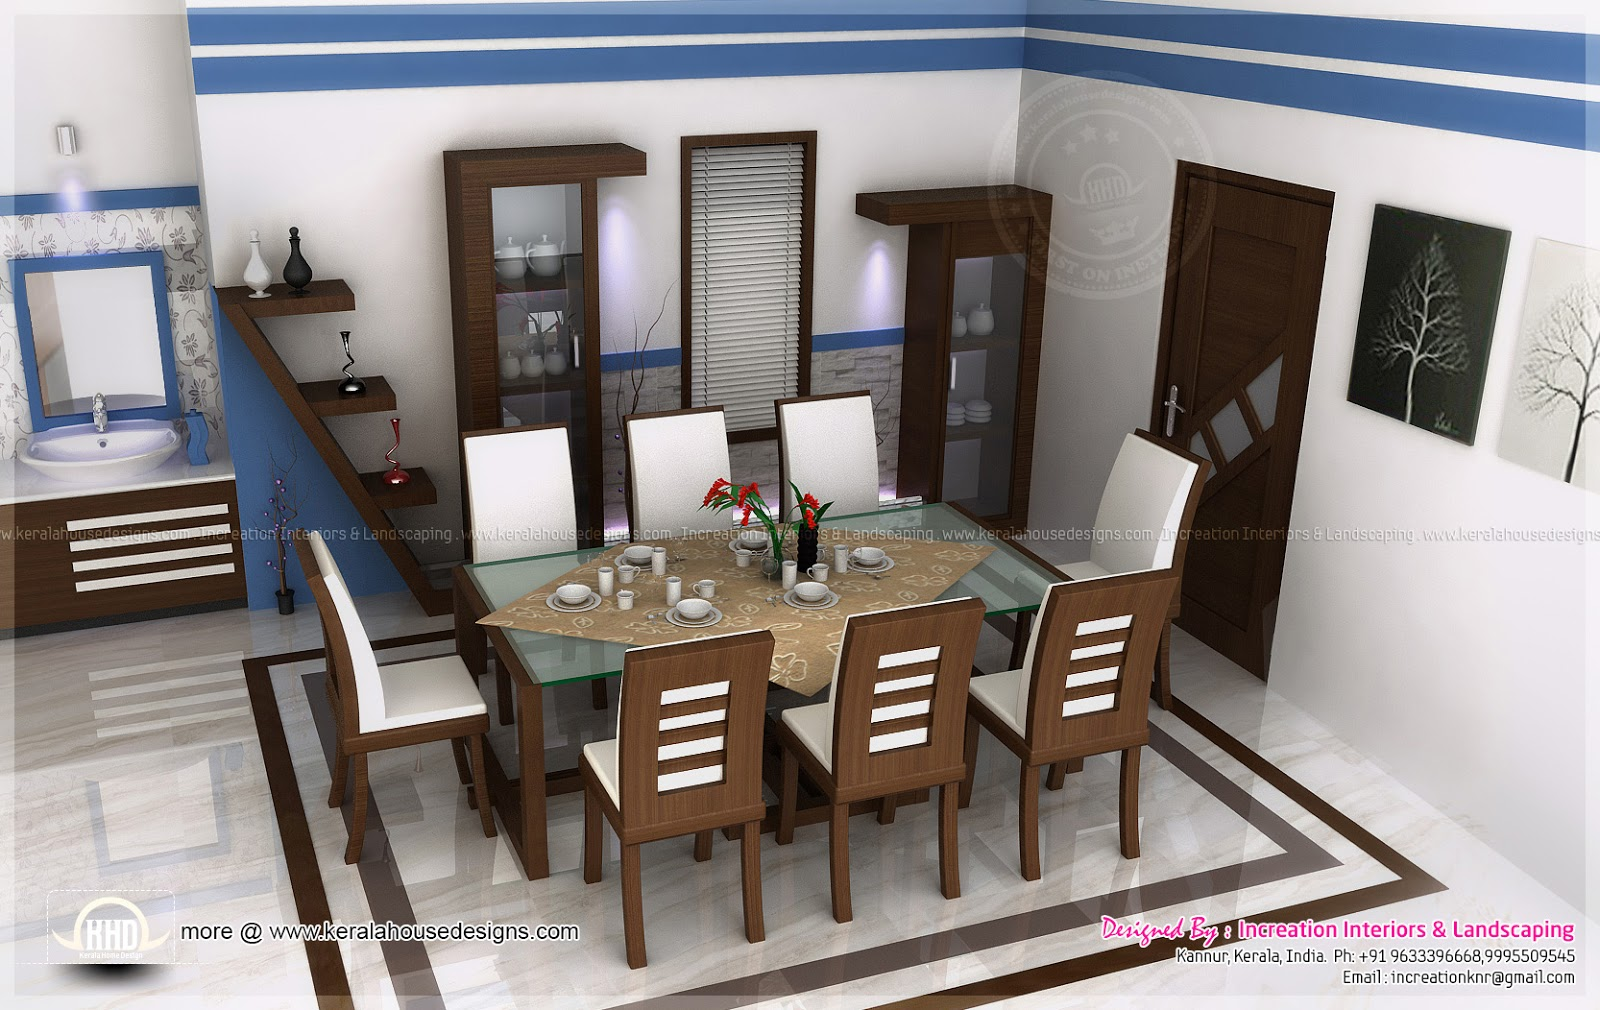 August 2013 kerala home design and floor plans Home interior design indian style